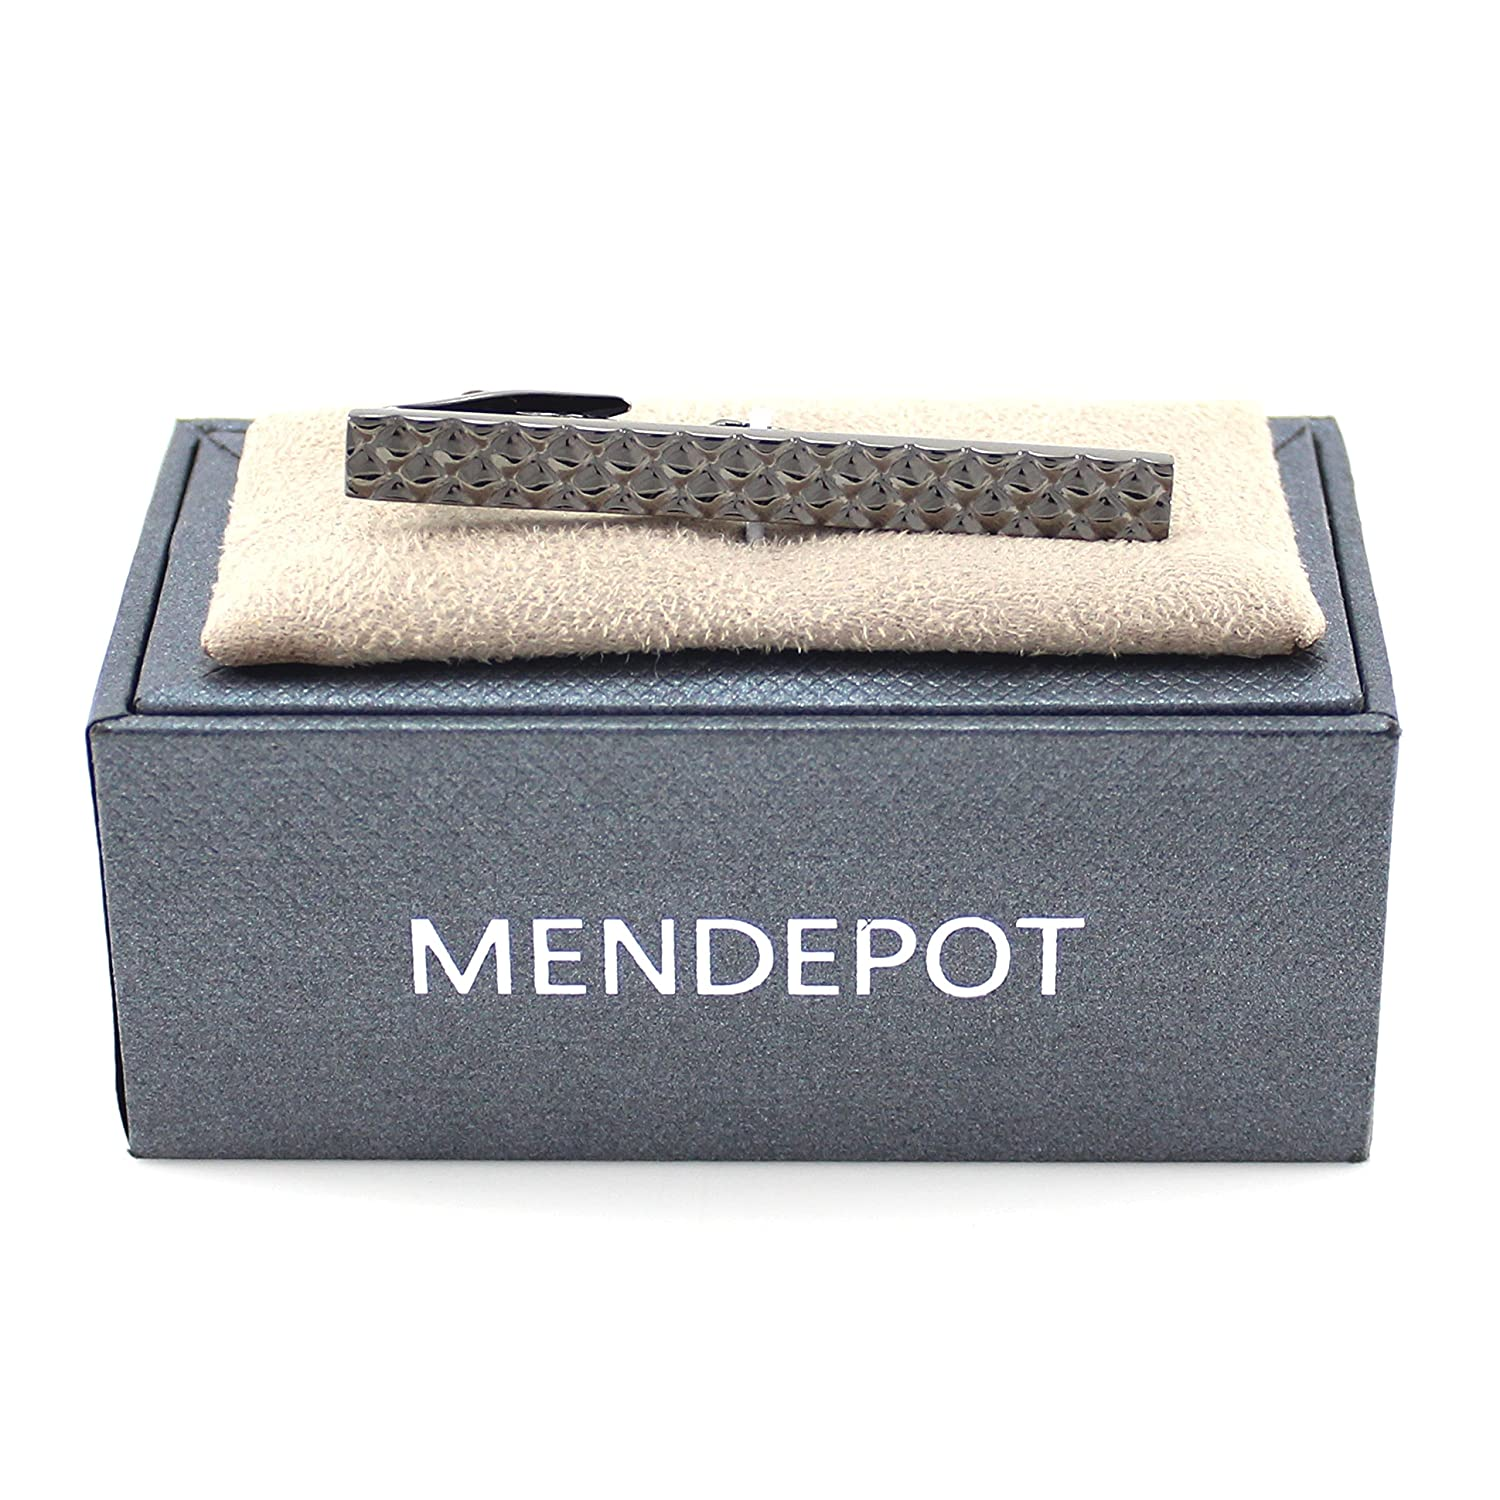 MENDEPOT Classic Gunmetal Plated Embossed Diamond Tie Clip in Box